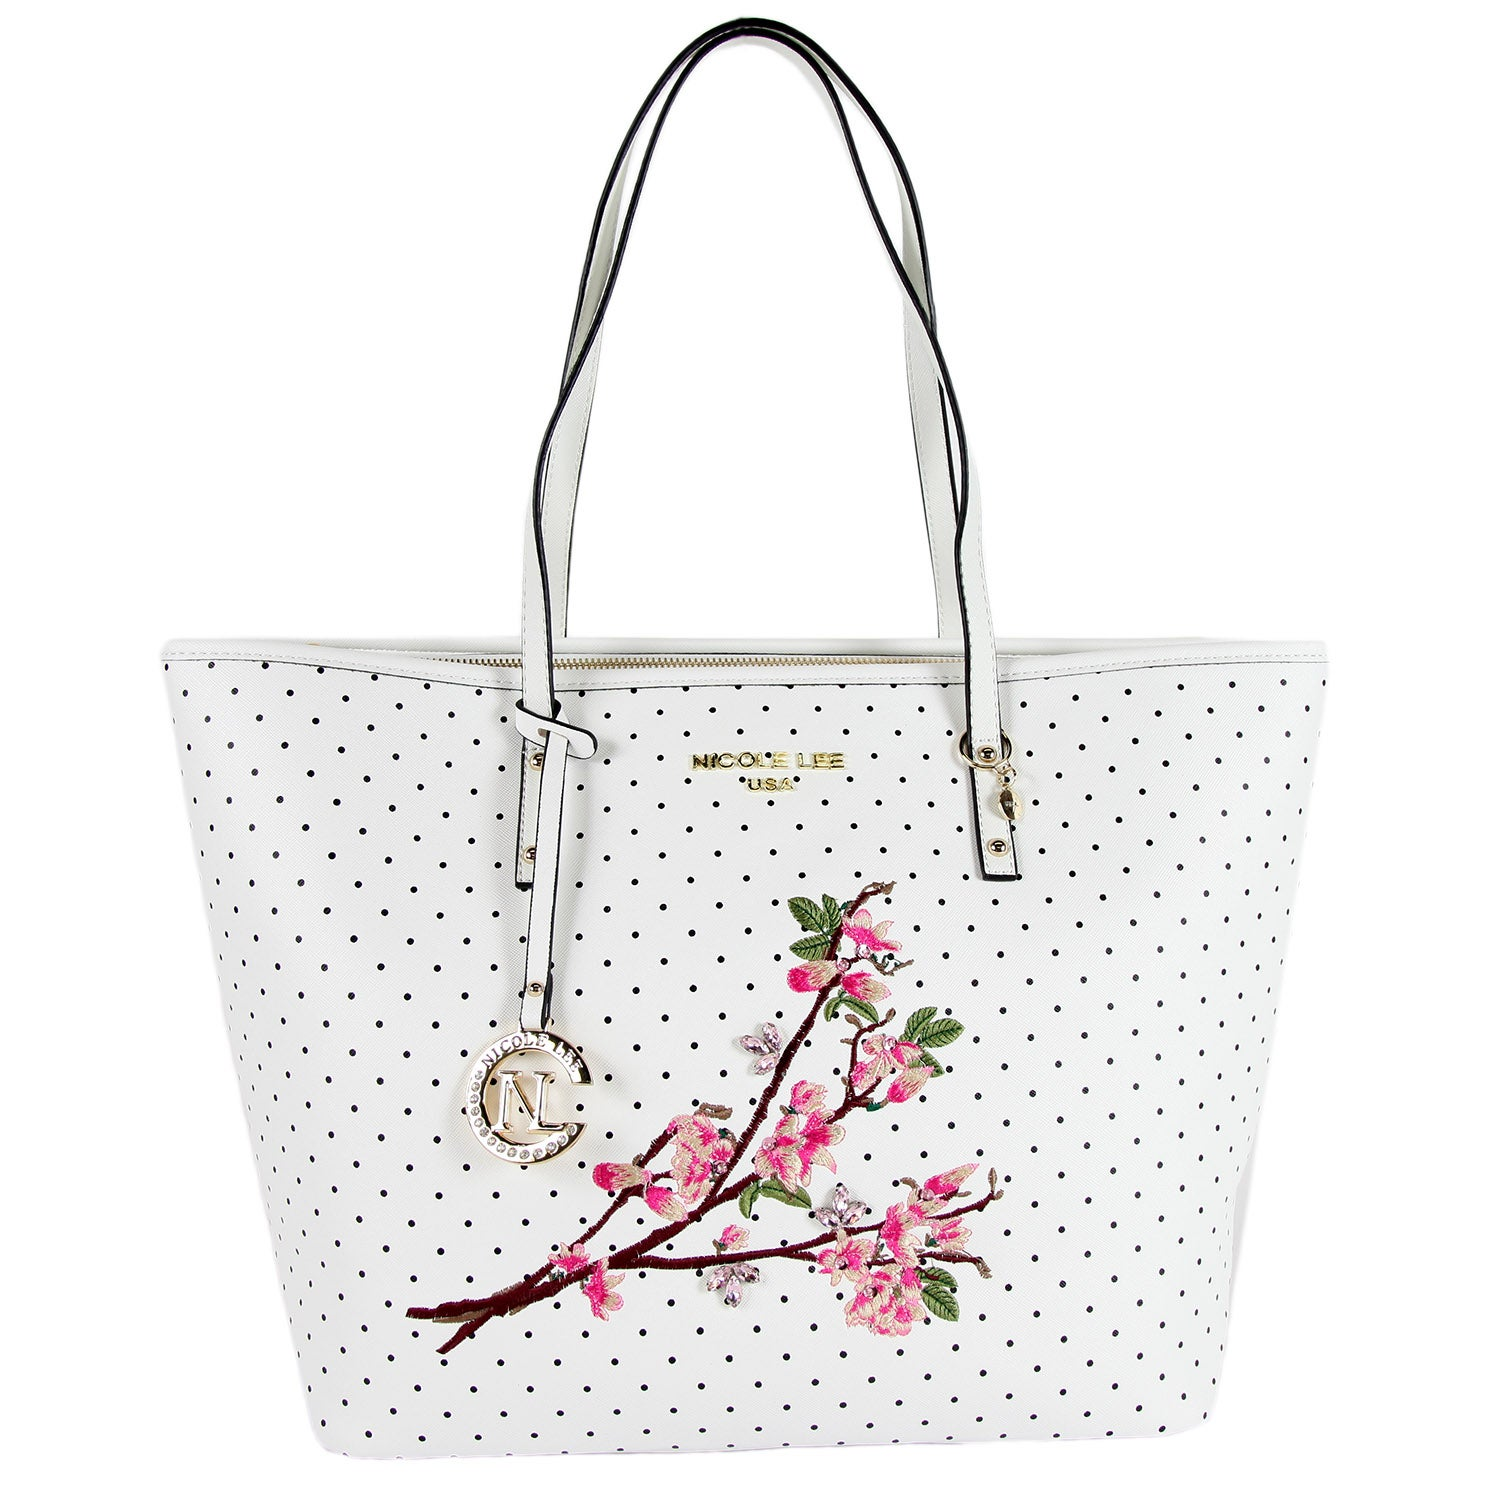 Nicole Lee Kayley White Floral Embellishment Shopper Tote Bag